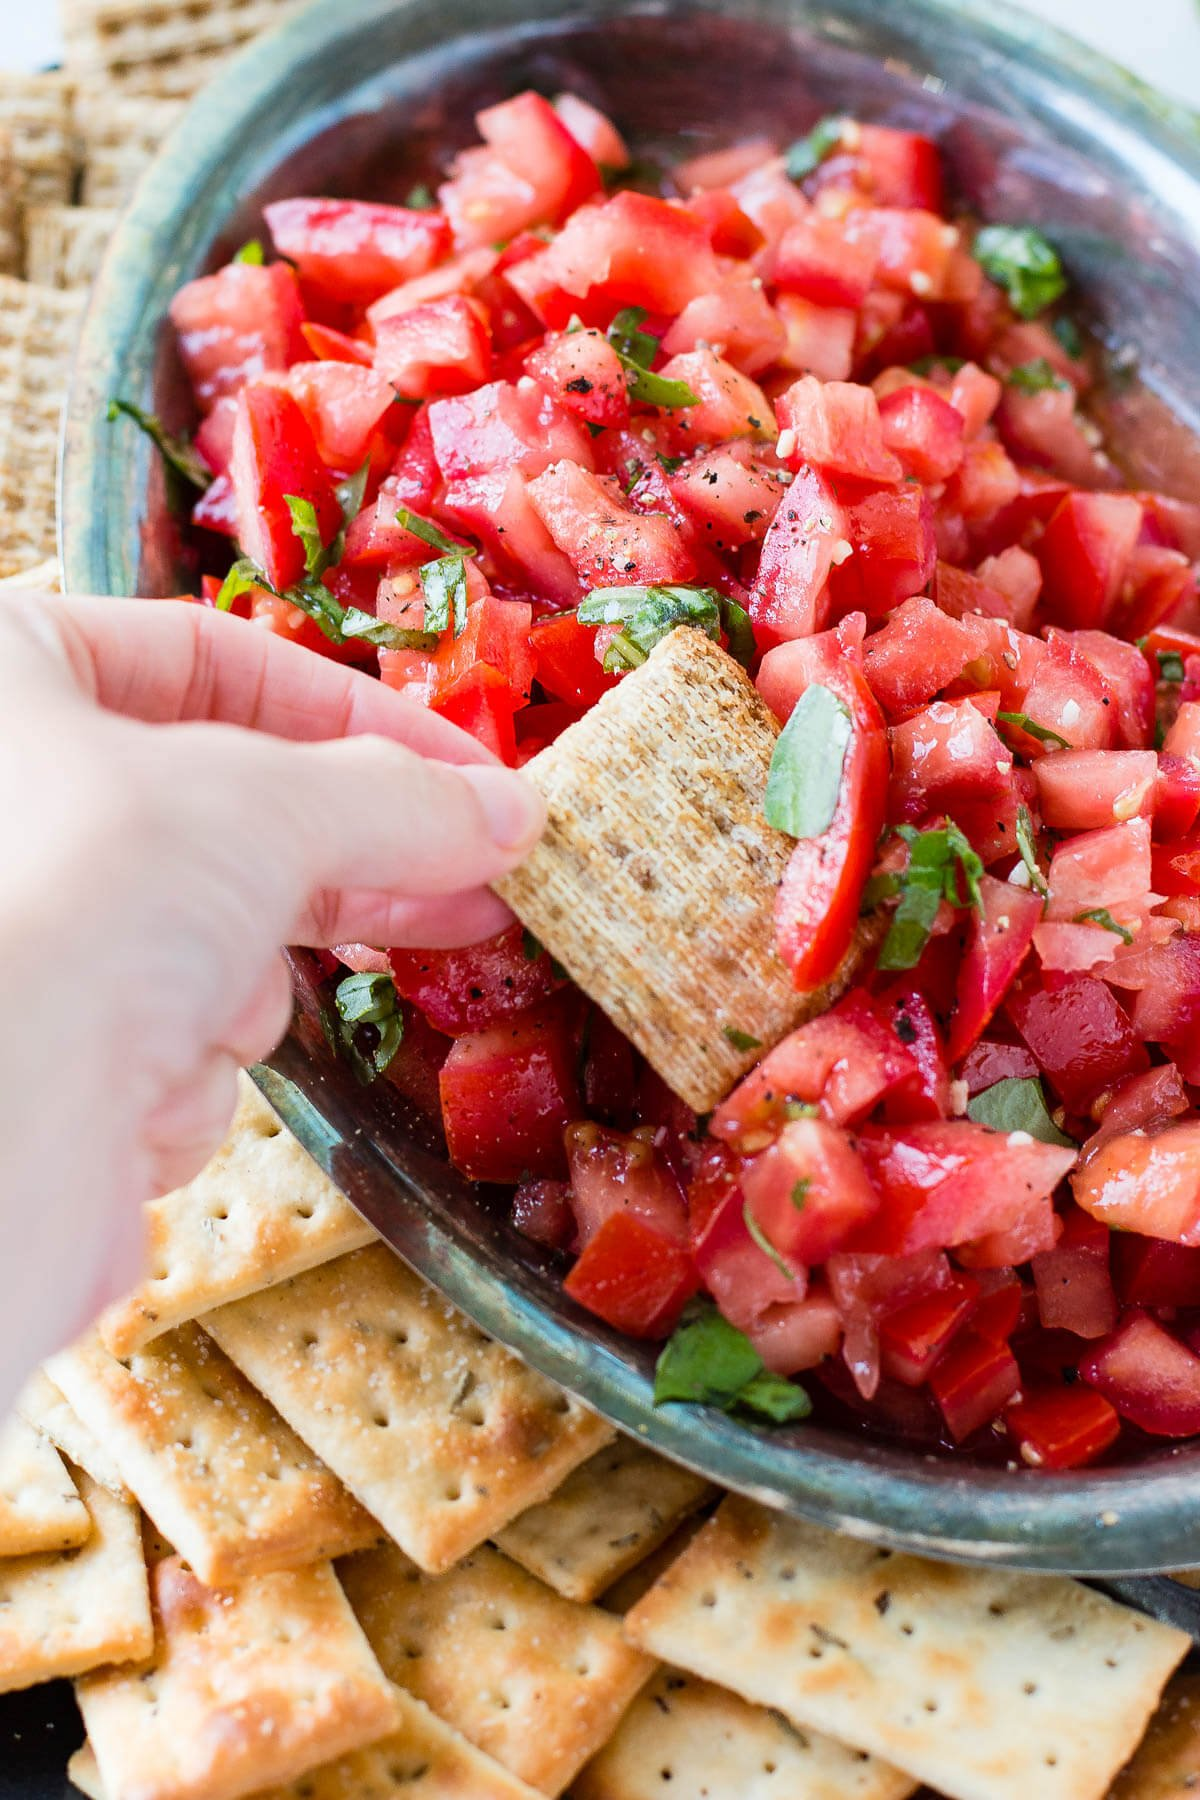 It doesn't take traveling to Italy to know that the simple, classic bruschetta appetizer recipe is the perfect way to use summer tomatoes or impress holiday guests.